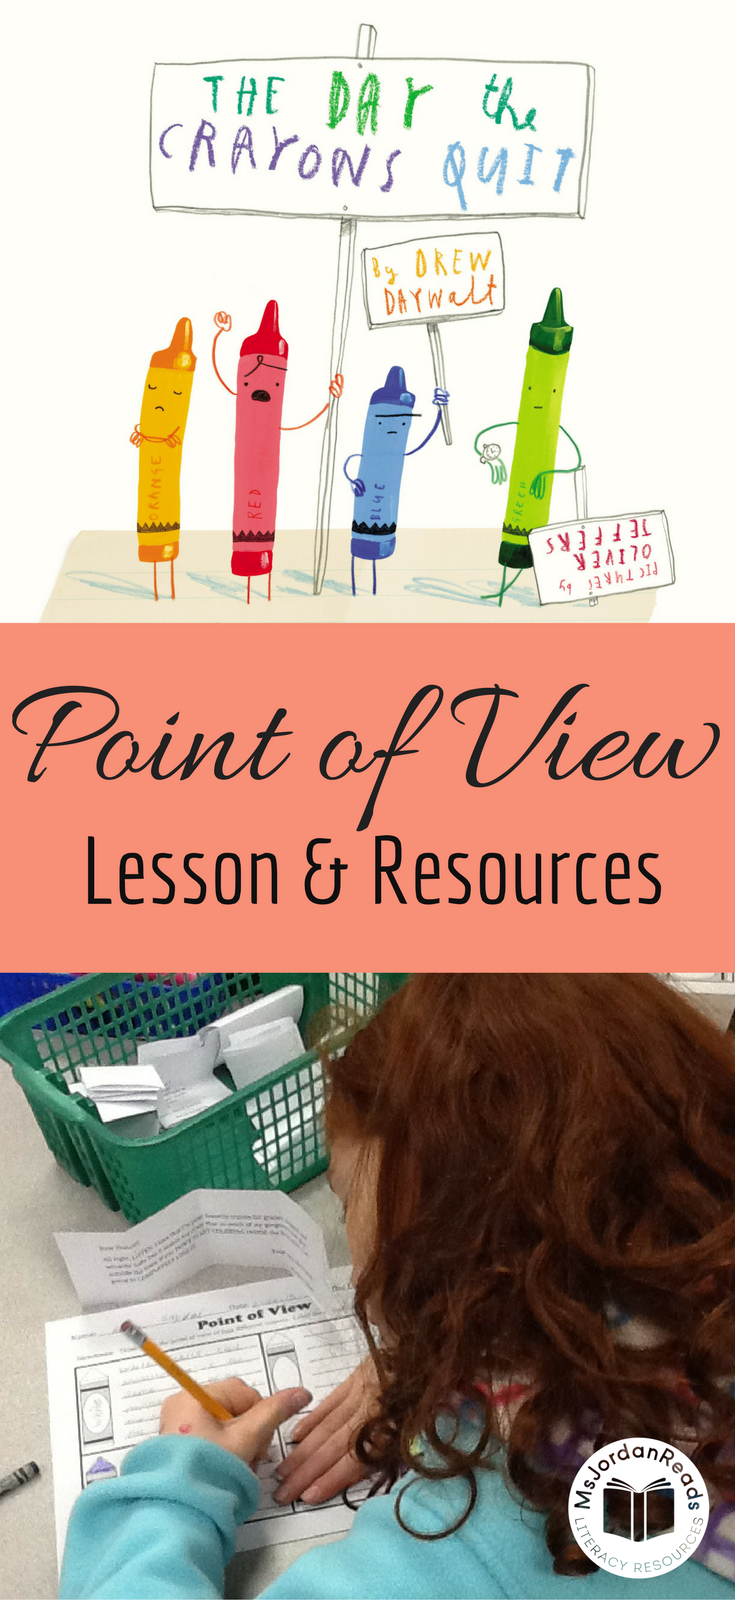 Point of View Lesson & Resources | A blog post for introducing students to point of view and character perspective using the wonderful mentor text: The Day the Crayons Quit | Includes free printable graphic organizer!